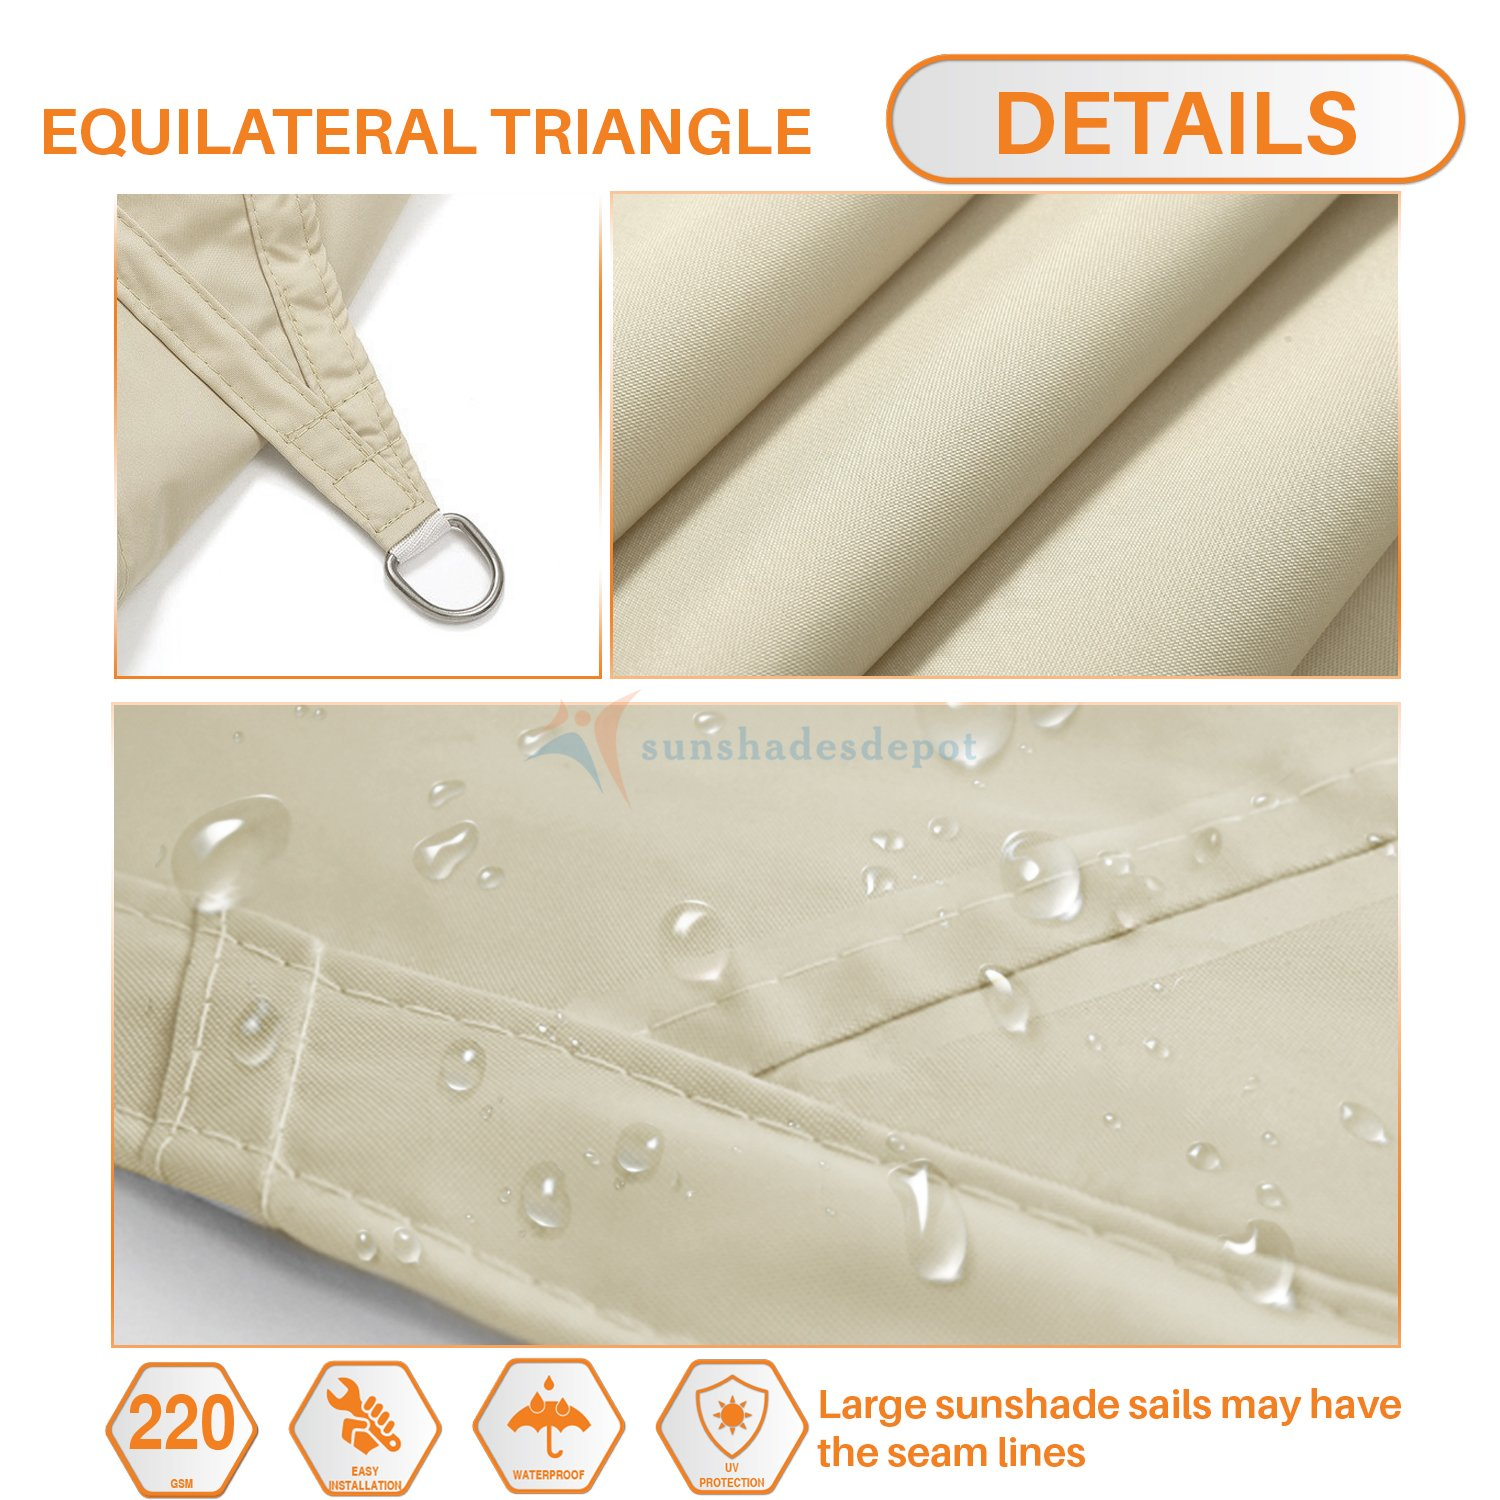 TANG Sunshades Depot 14 x14 x14 Equilateral Triangle Waterproof Terylene Knitted Shade Sail Curved Edge Beige 220 GSM UV Block Shade Fabric Pergola Carport Awning Canopy Replacement Awning